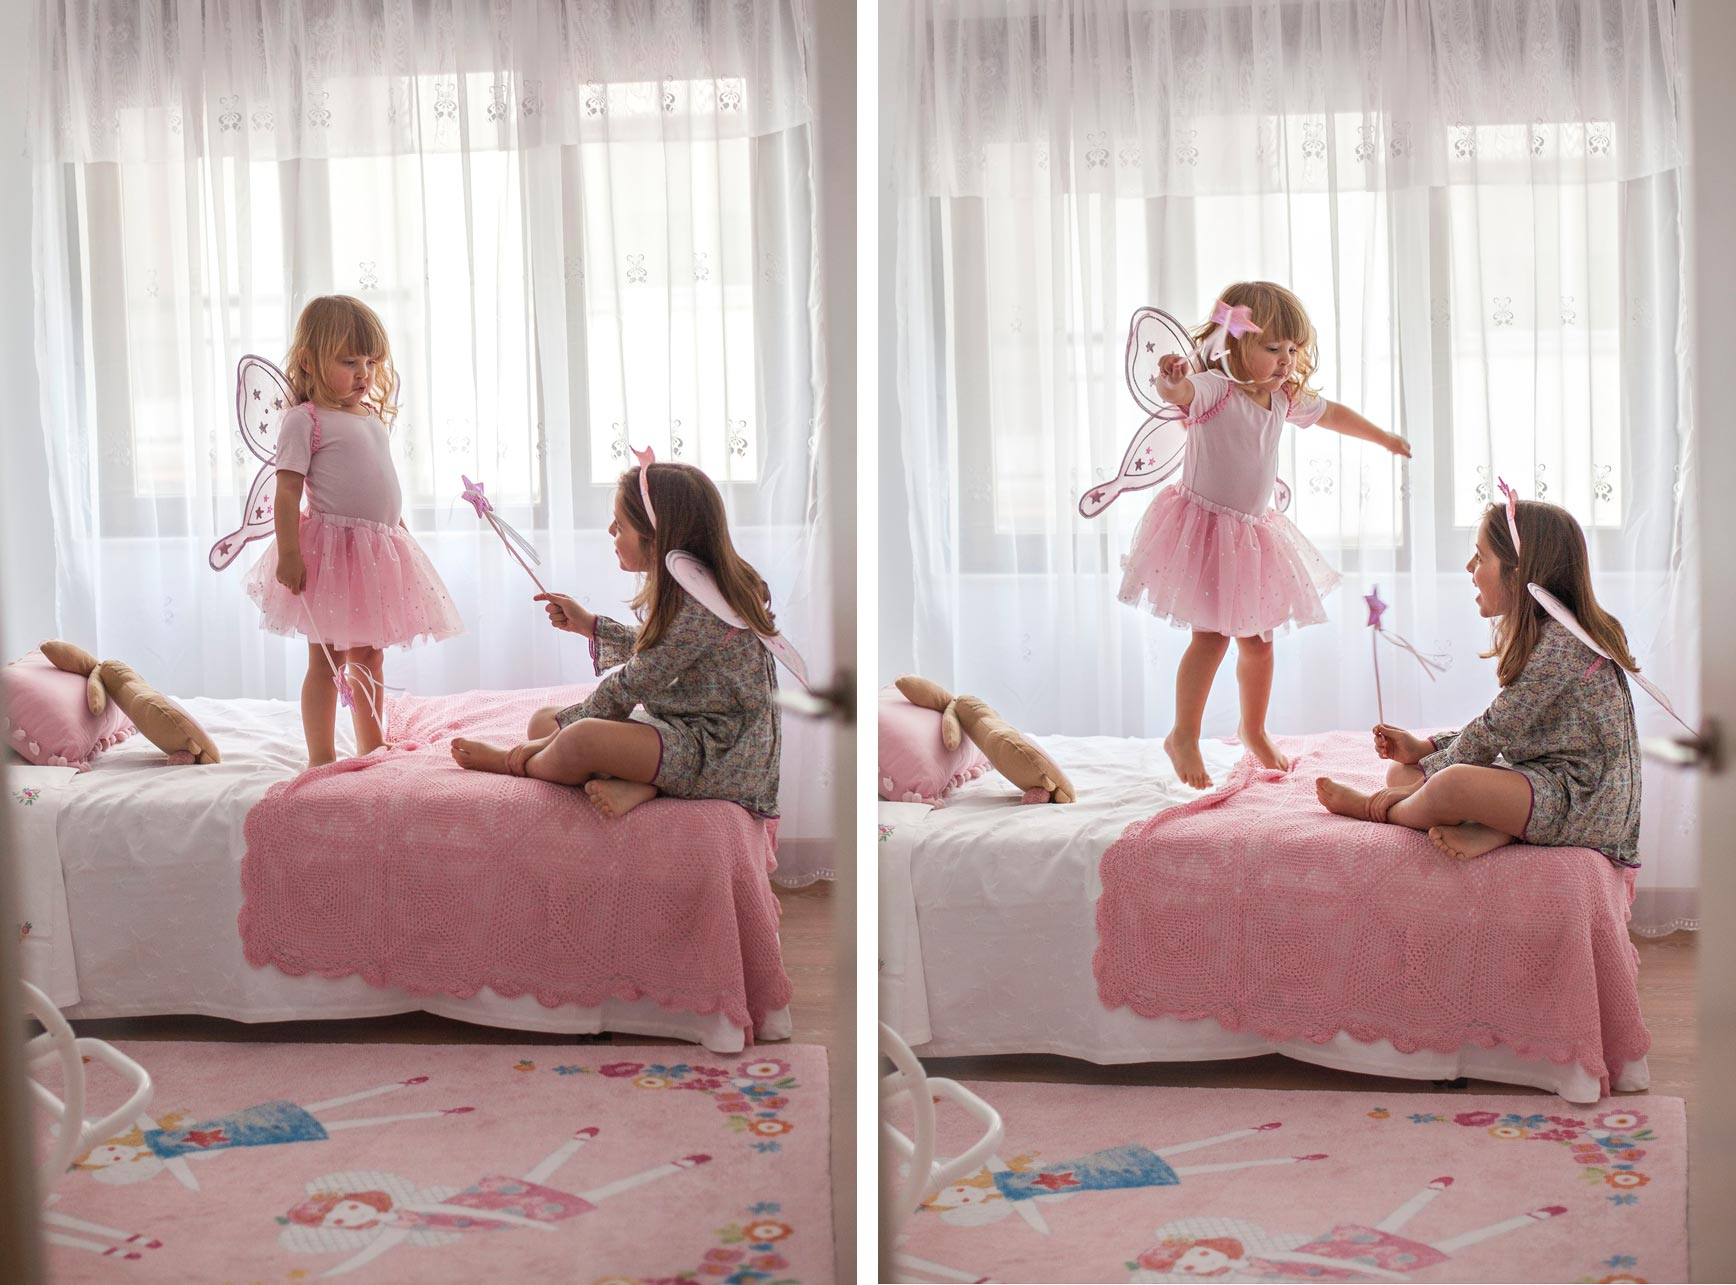 Mini_Home_Princesas003